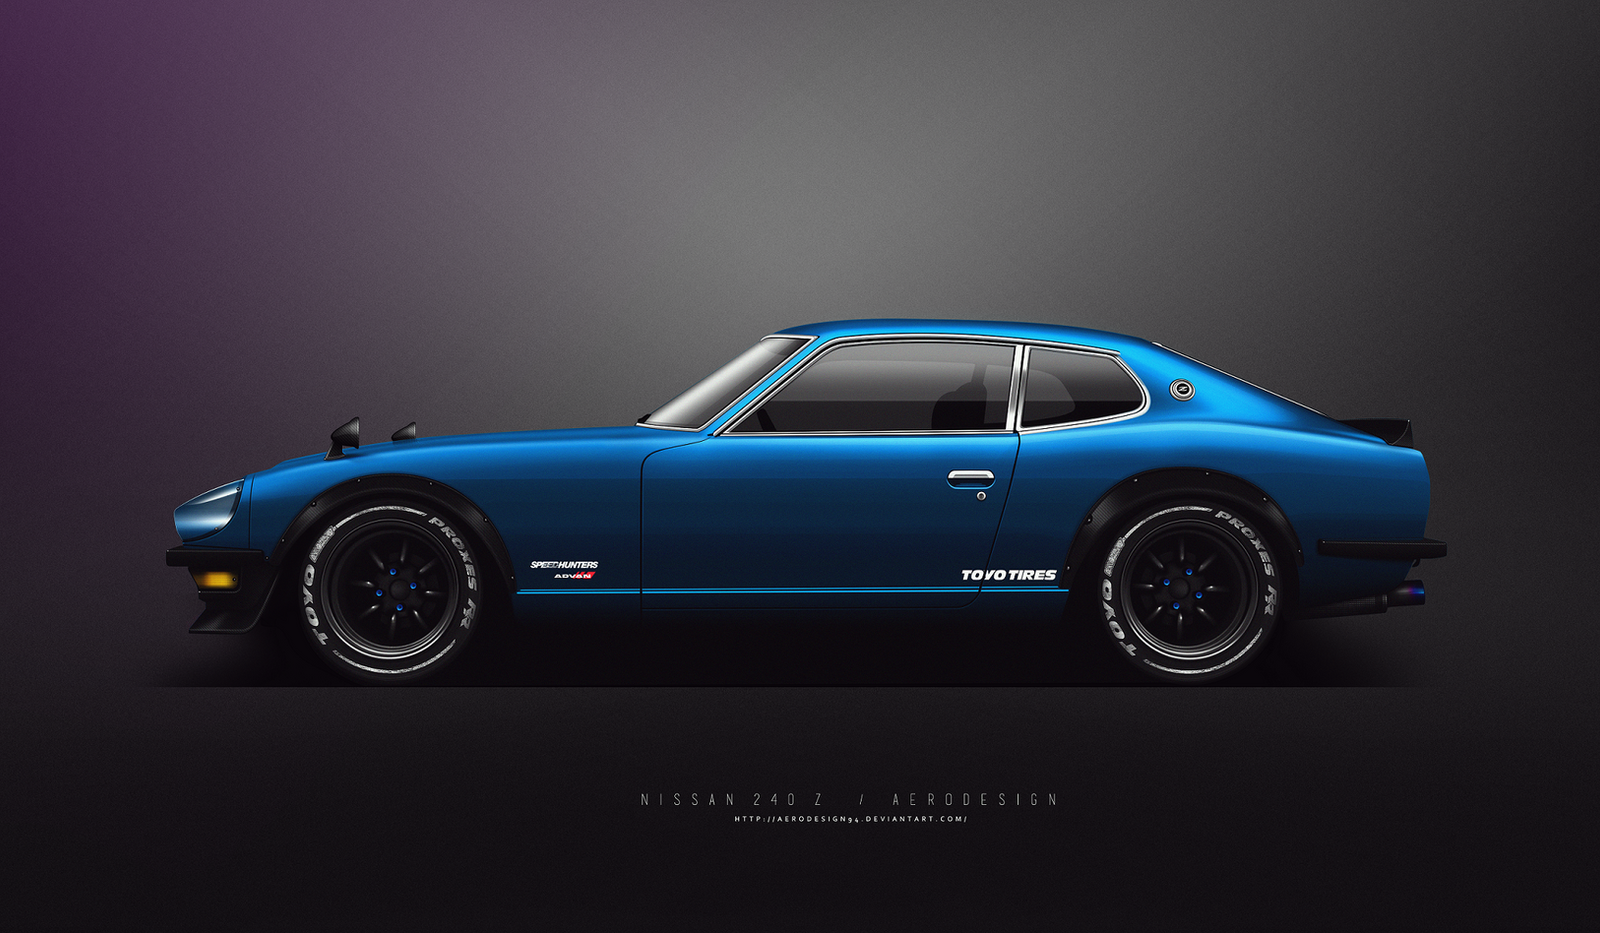 240z by AeroDesign94